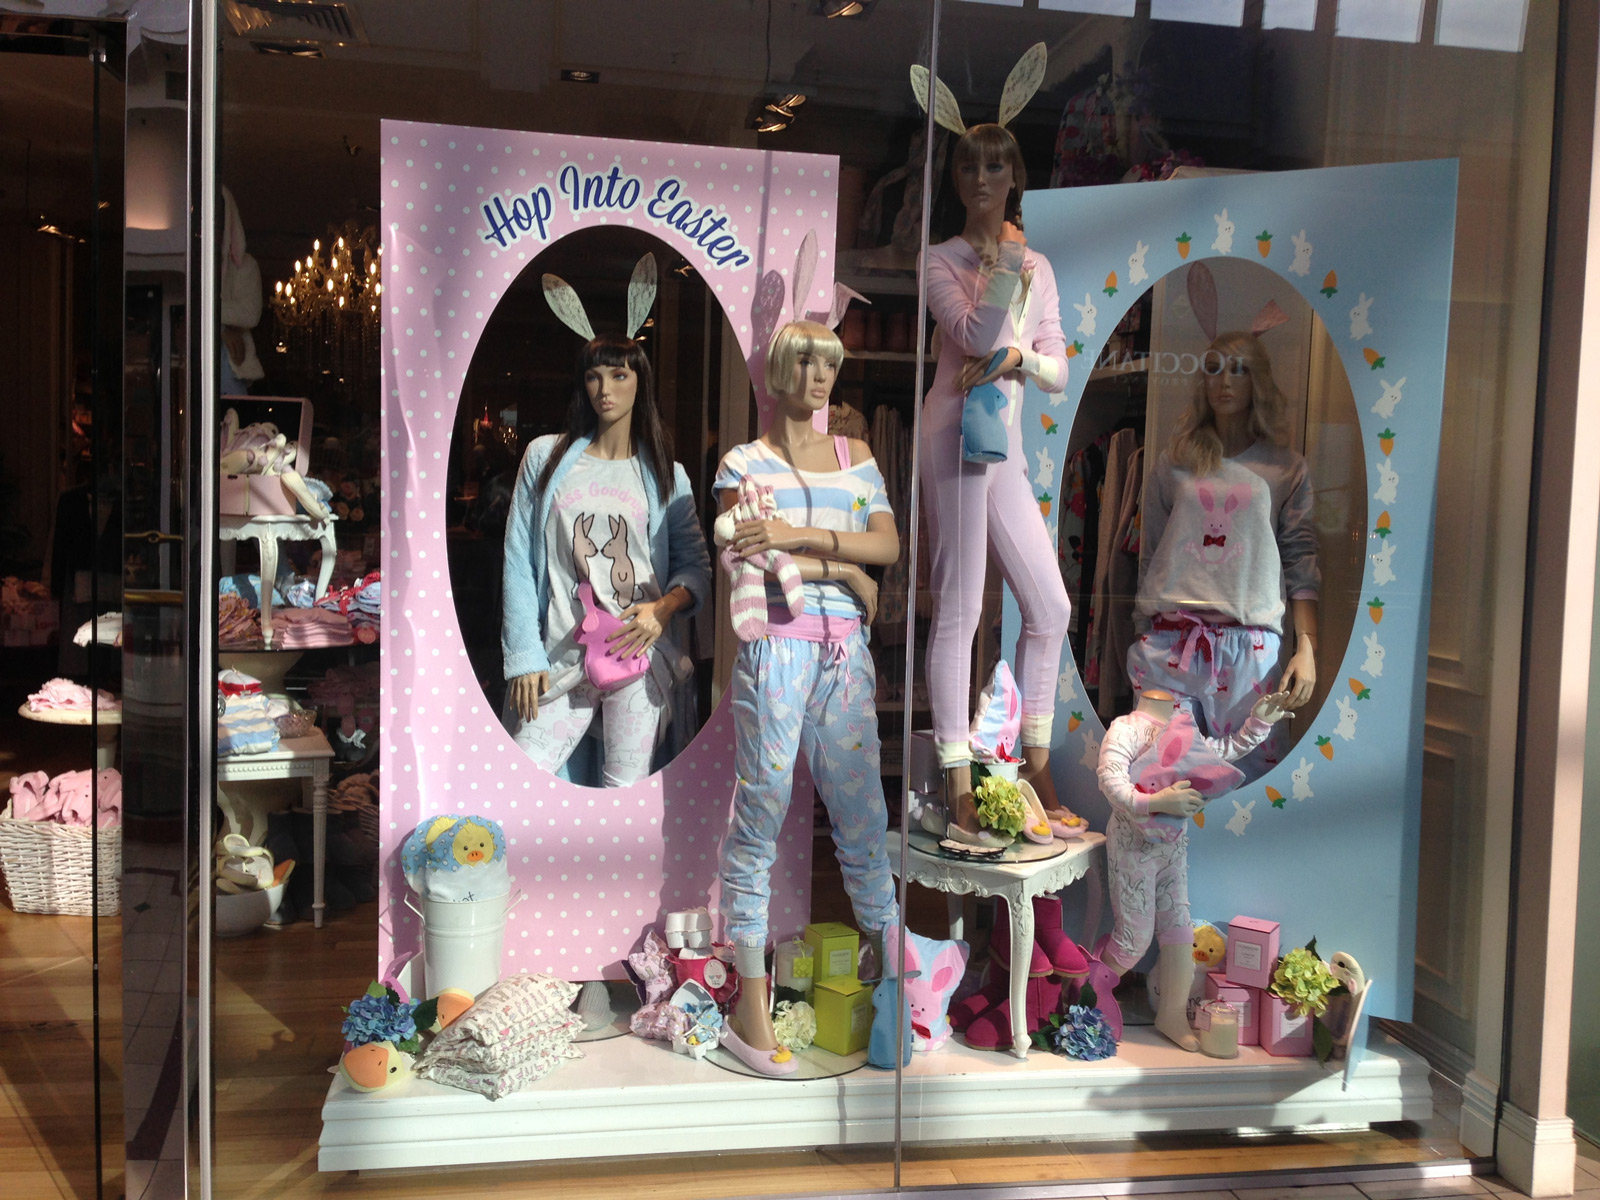 Hop into Easter it is the theme of this window display, with those bunnies ears and cozy pajamas, the baby blue and pink colors chosen.